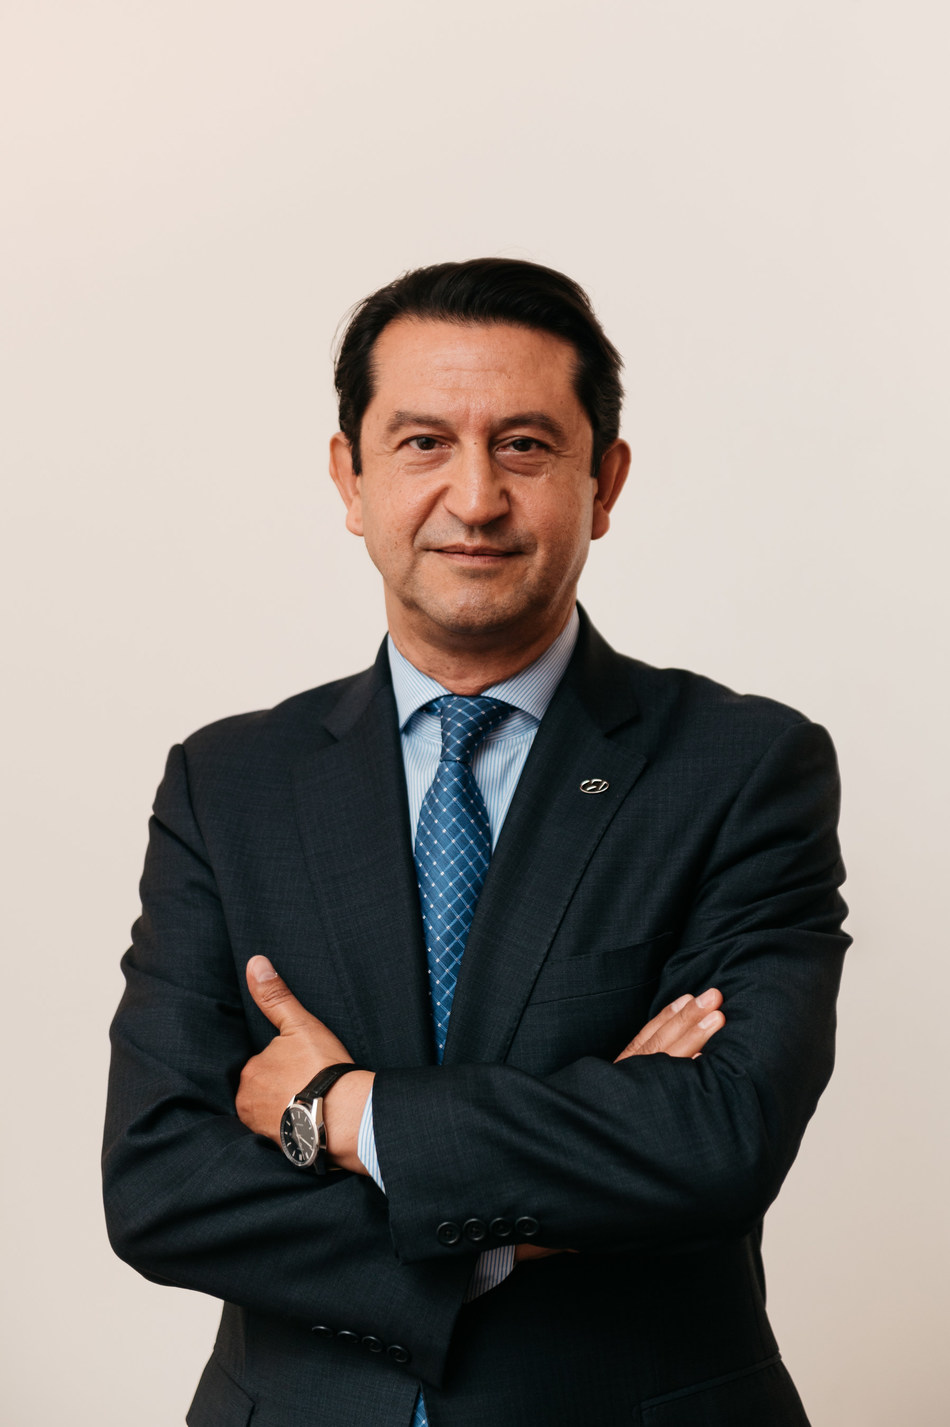 Hyundai Motor Company has appointed José Muñoz as global Chief Operating Officer. In this capacity, Mr. Muñoz will oversee global operations strategies and their implementation. He has also been named President and CEO of both Hyundai Motor North America and Hyundai Motor America.